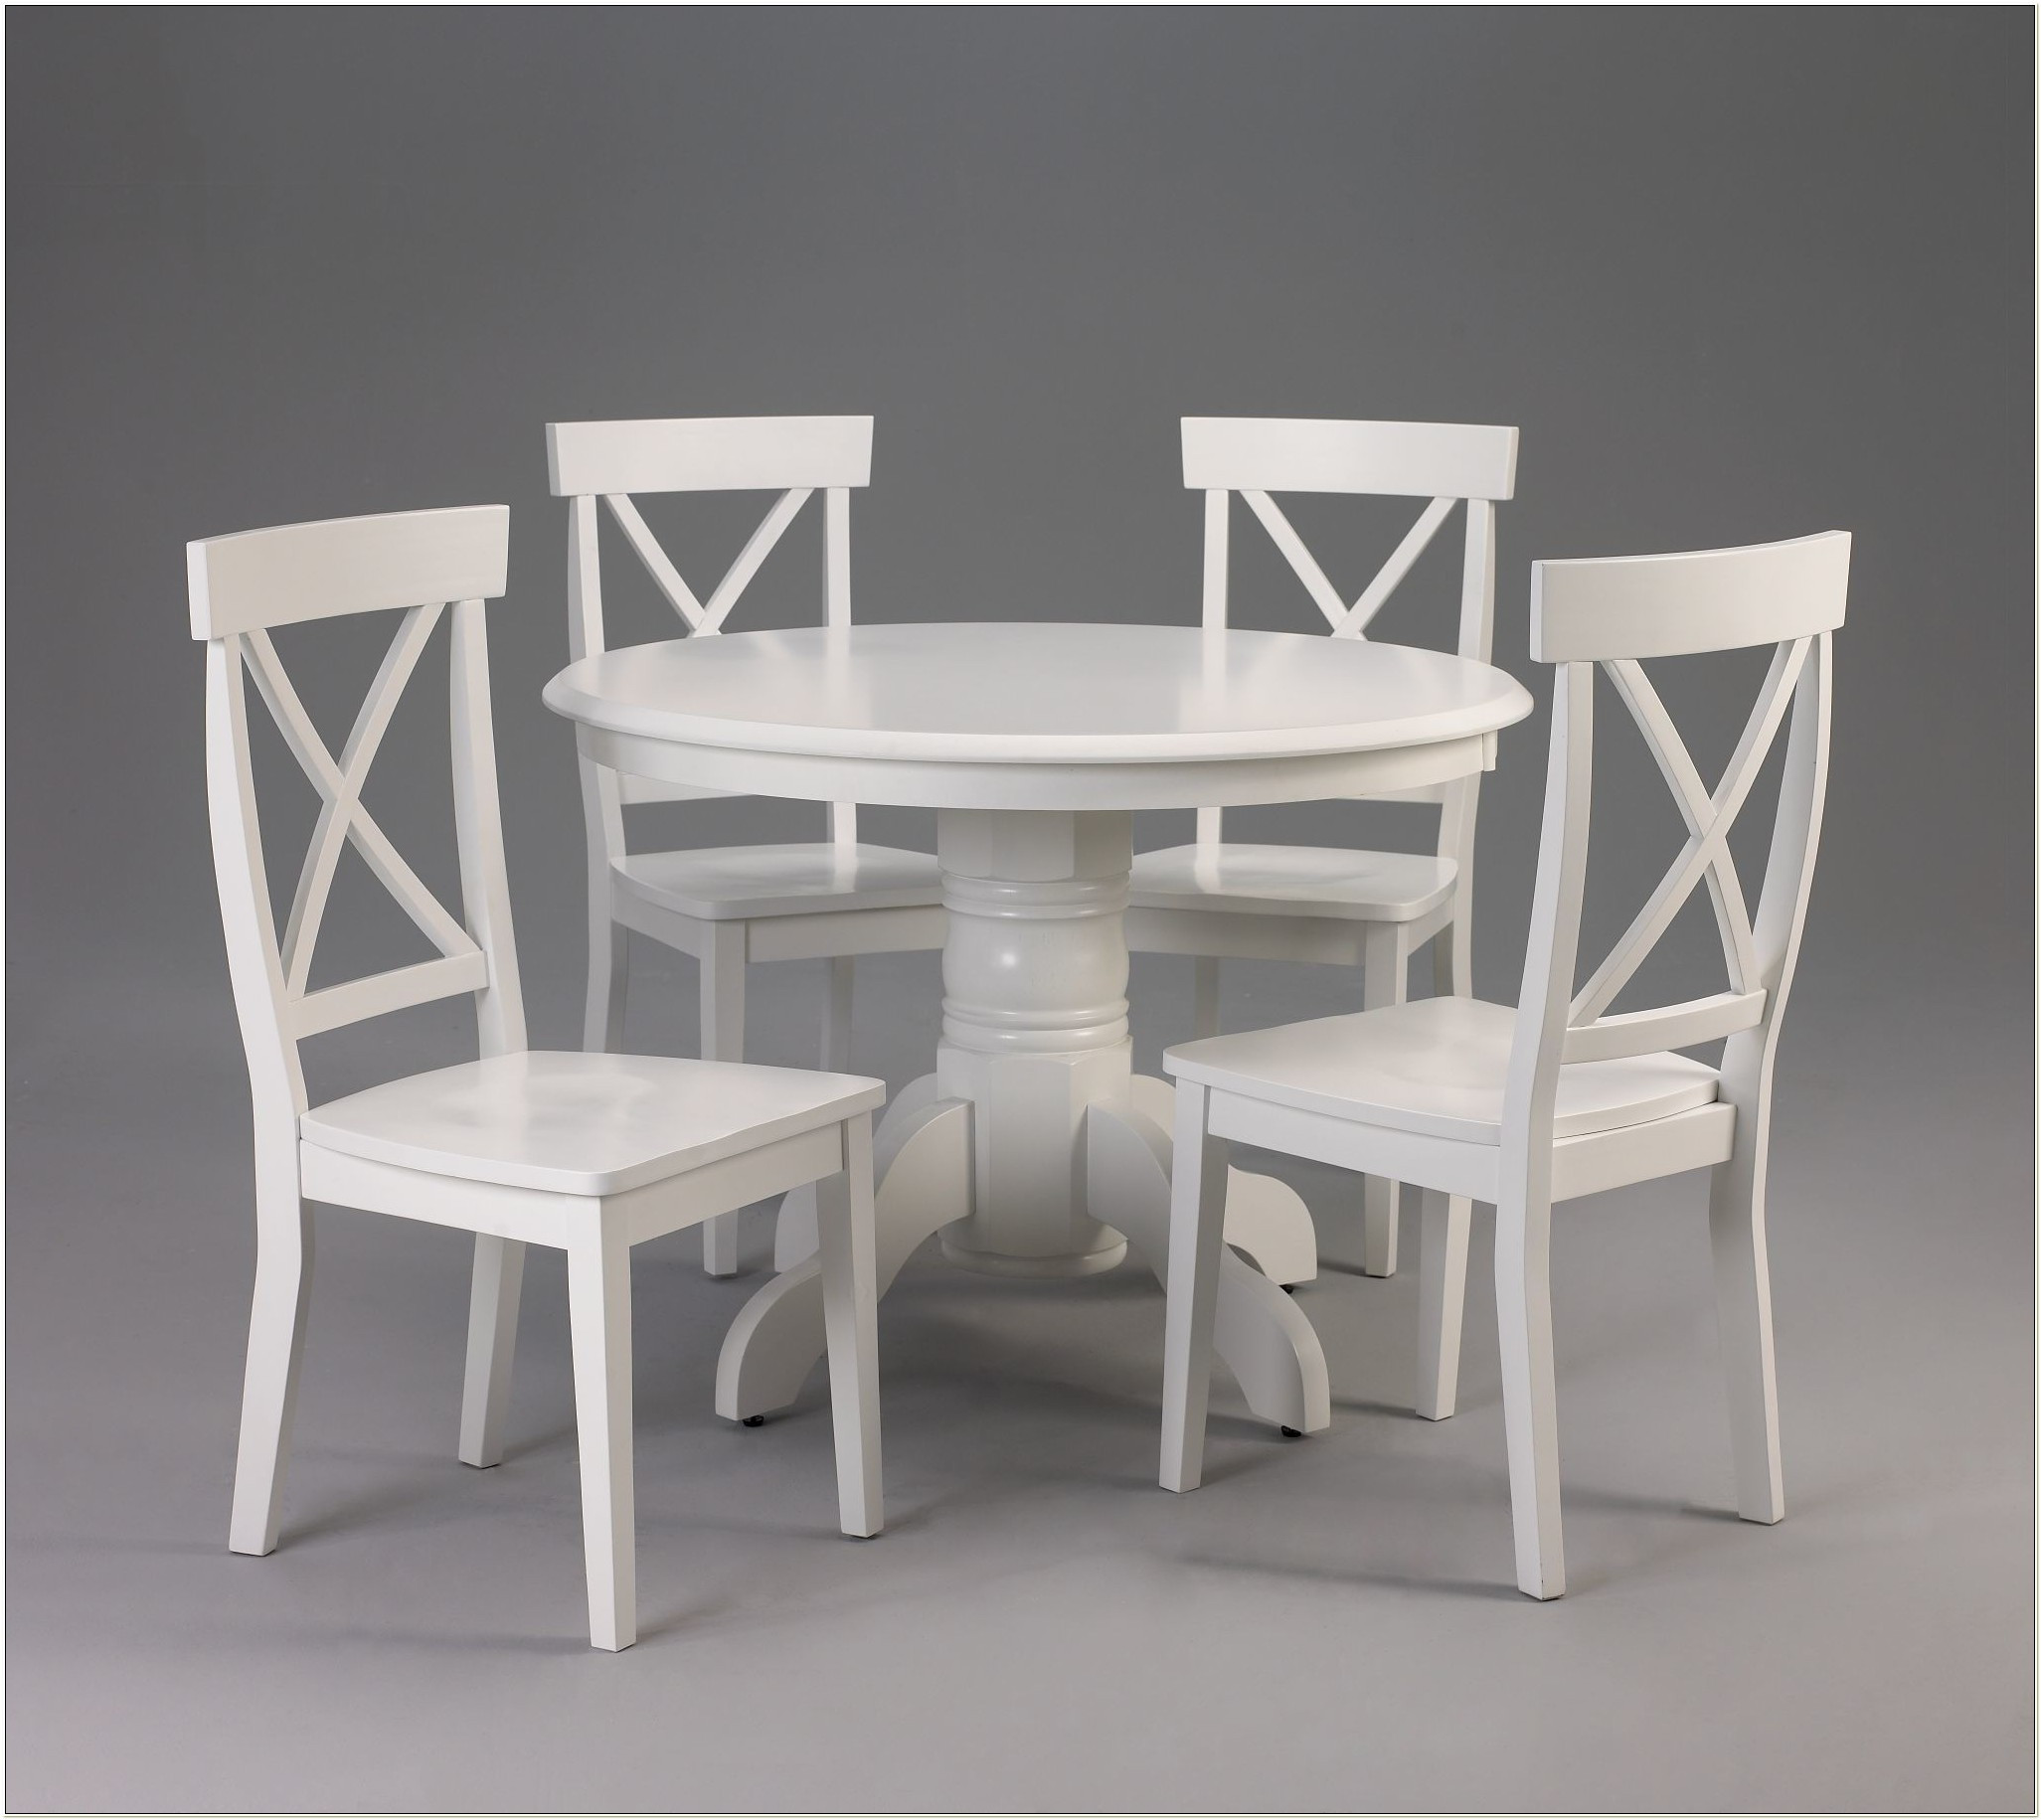 Best ideas about Ikea Round Dining Table . Save or Pin Ikea White Round Dining Table And Chairs Chairs Home Now.